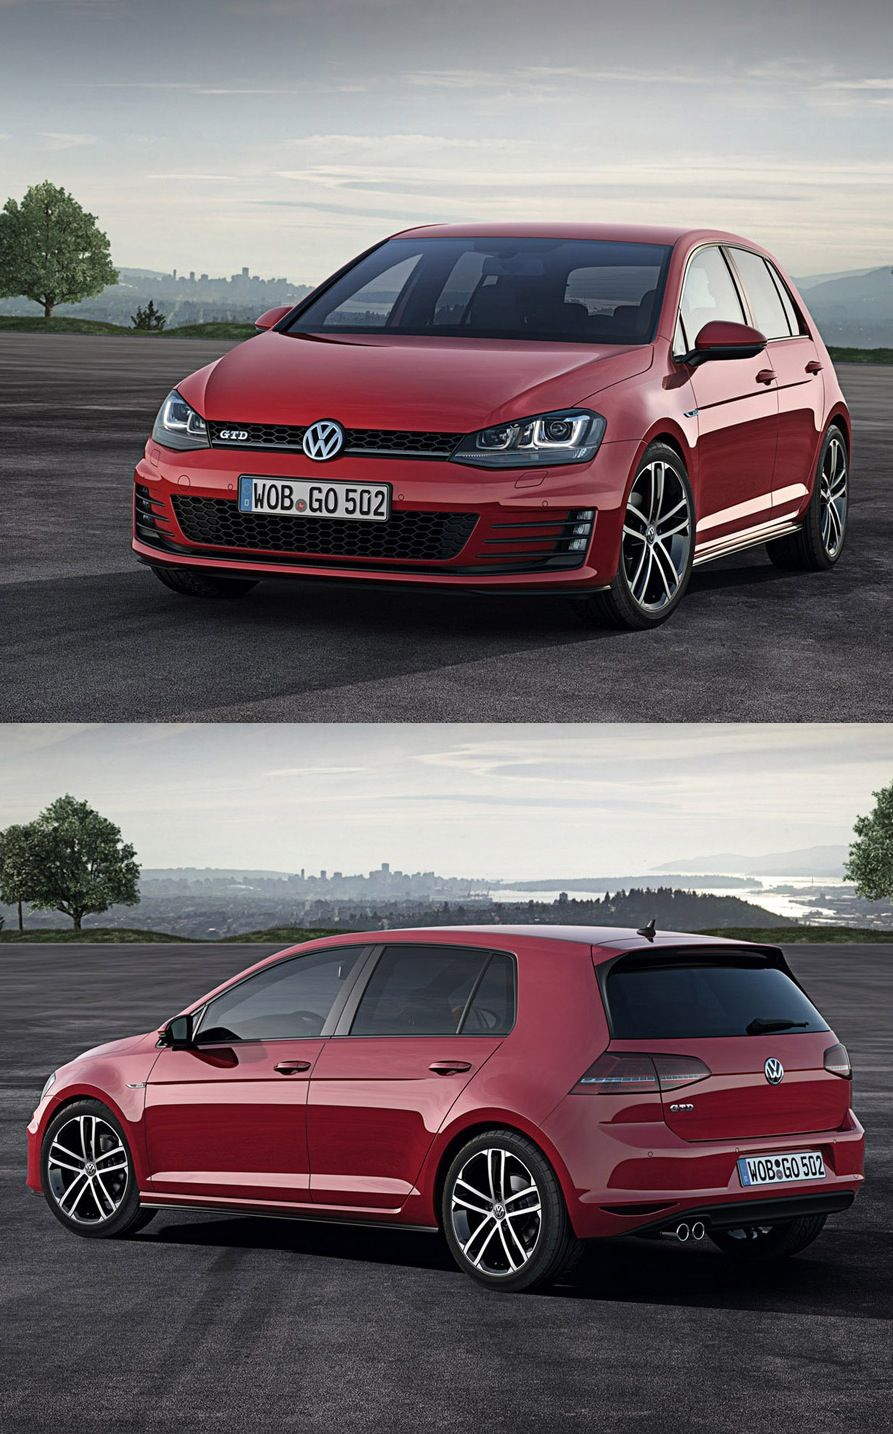 Pin By Jonney Ryan Sammut On Car Car Volkswagen Sports Cars Luxury Volkswagen Car